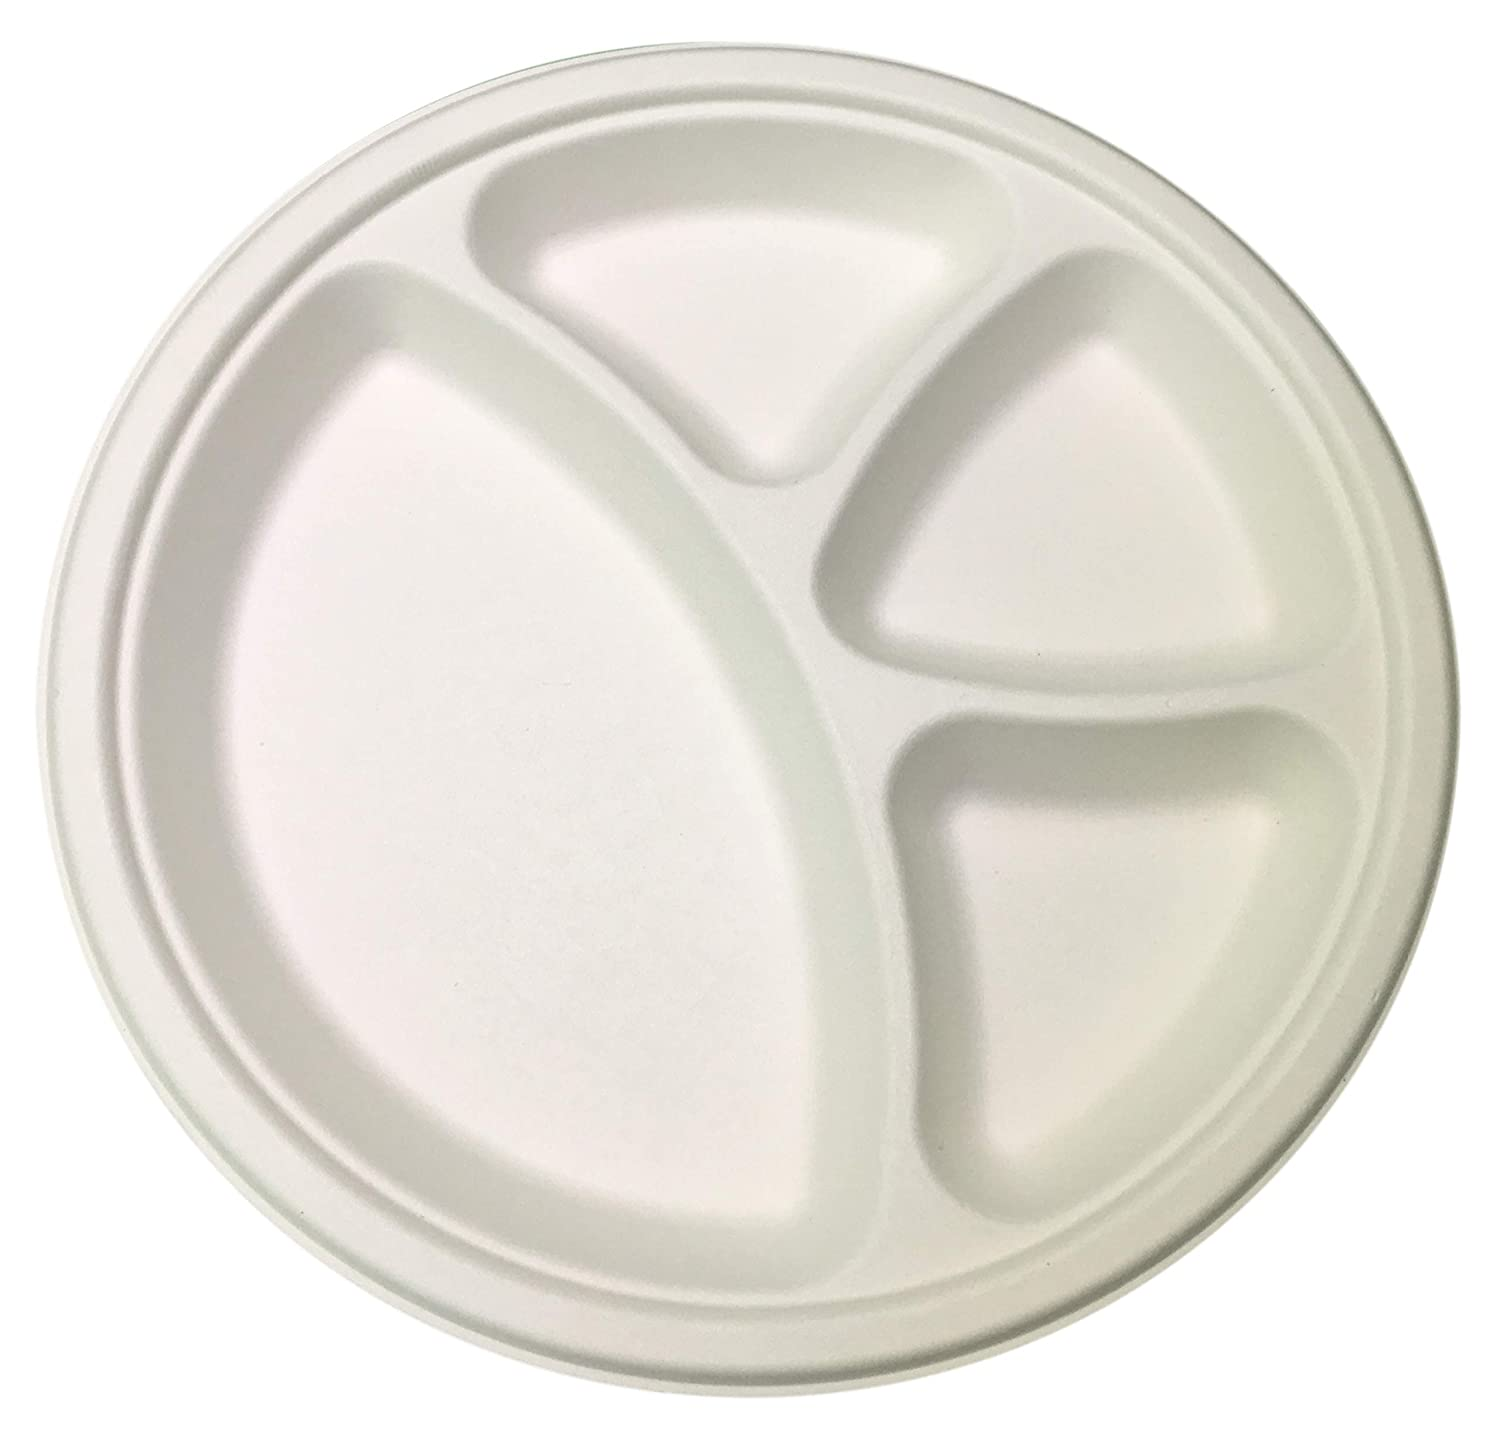 STRONG /& LEAF PROOF 4 Compartment Biodegradable Sugarcane White Paper Plates